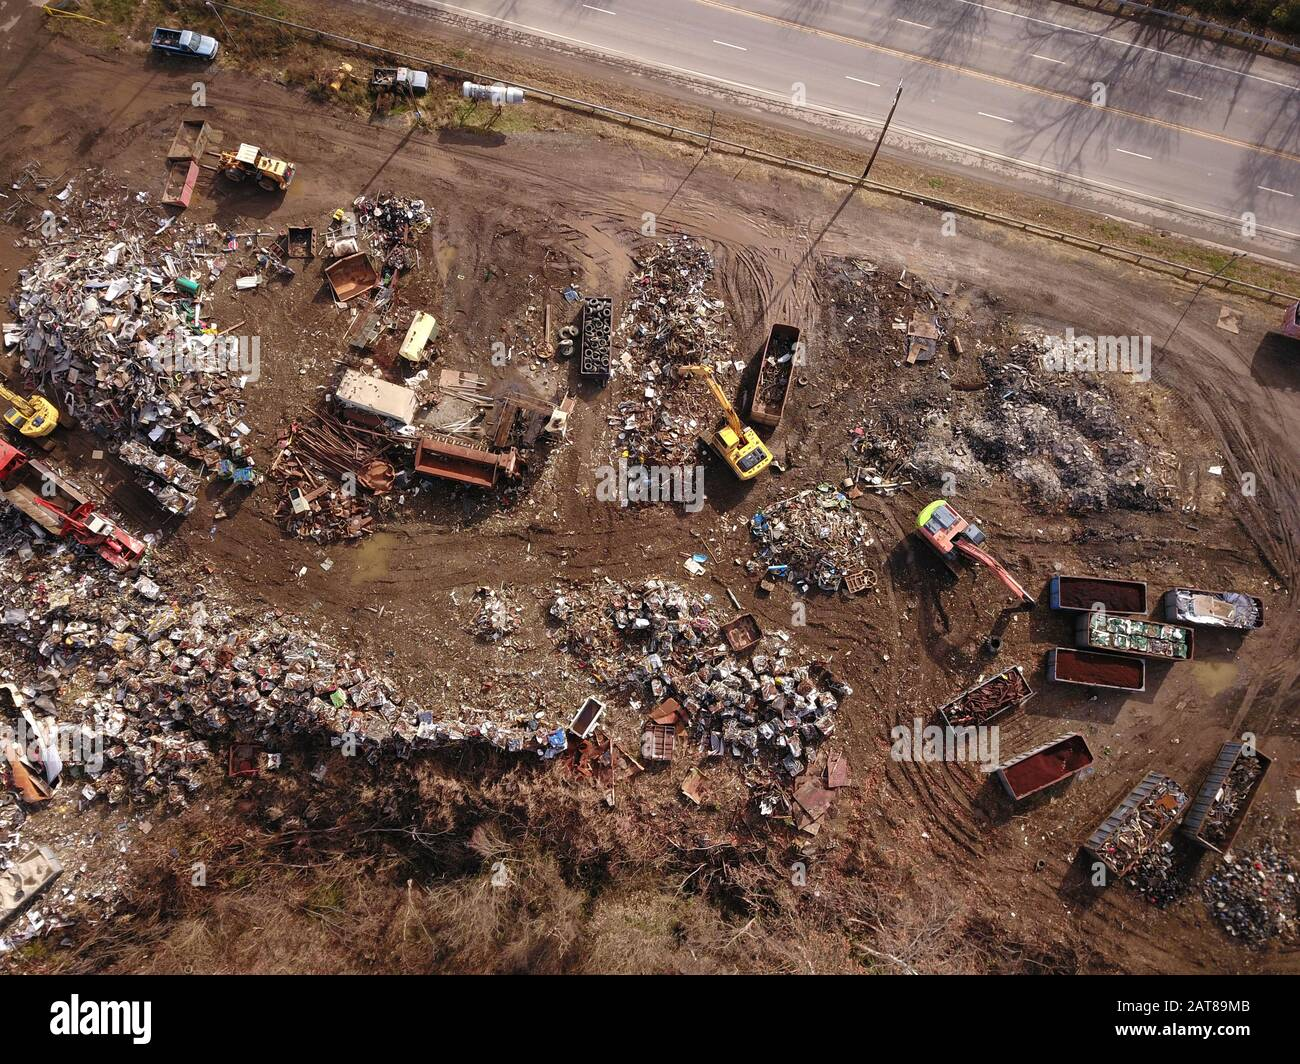 Drone aerial Metal scrapyard recycling Cincinnati Ohio USA Stock Photo